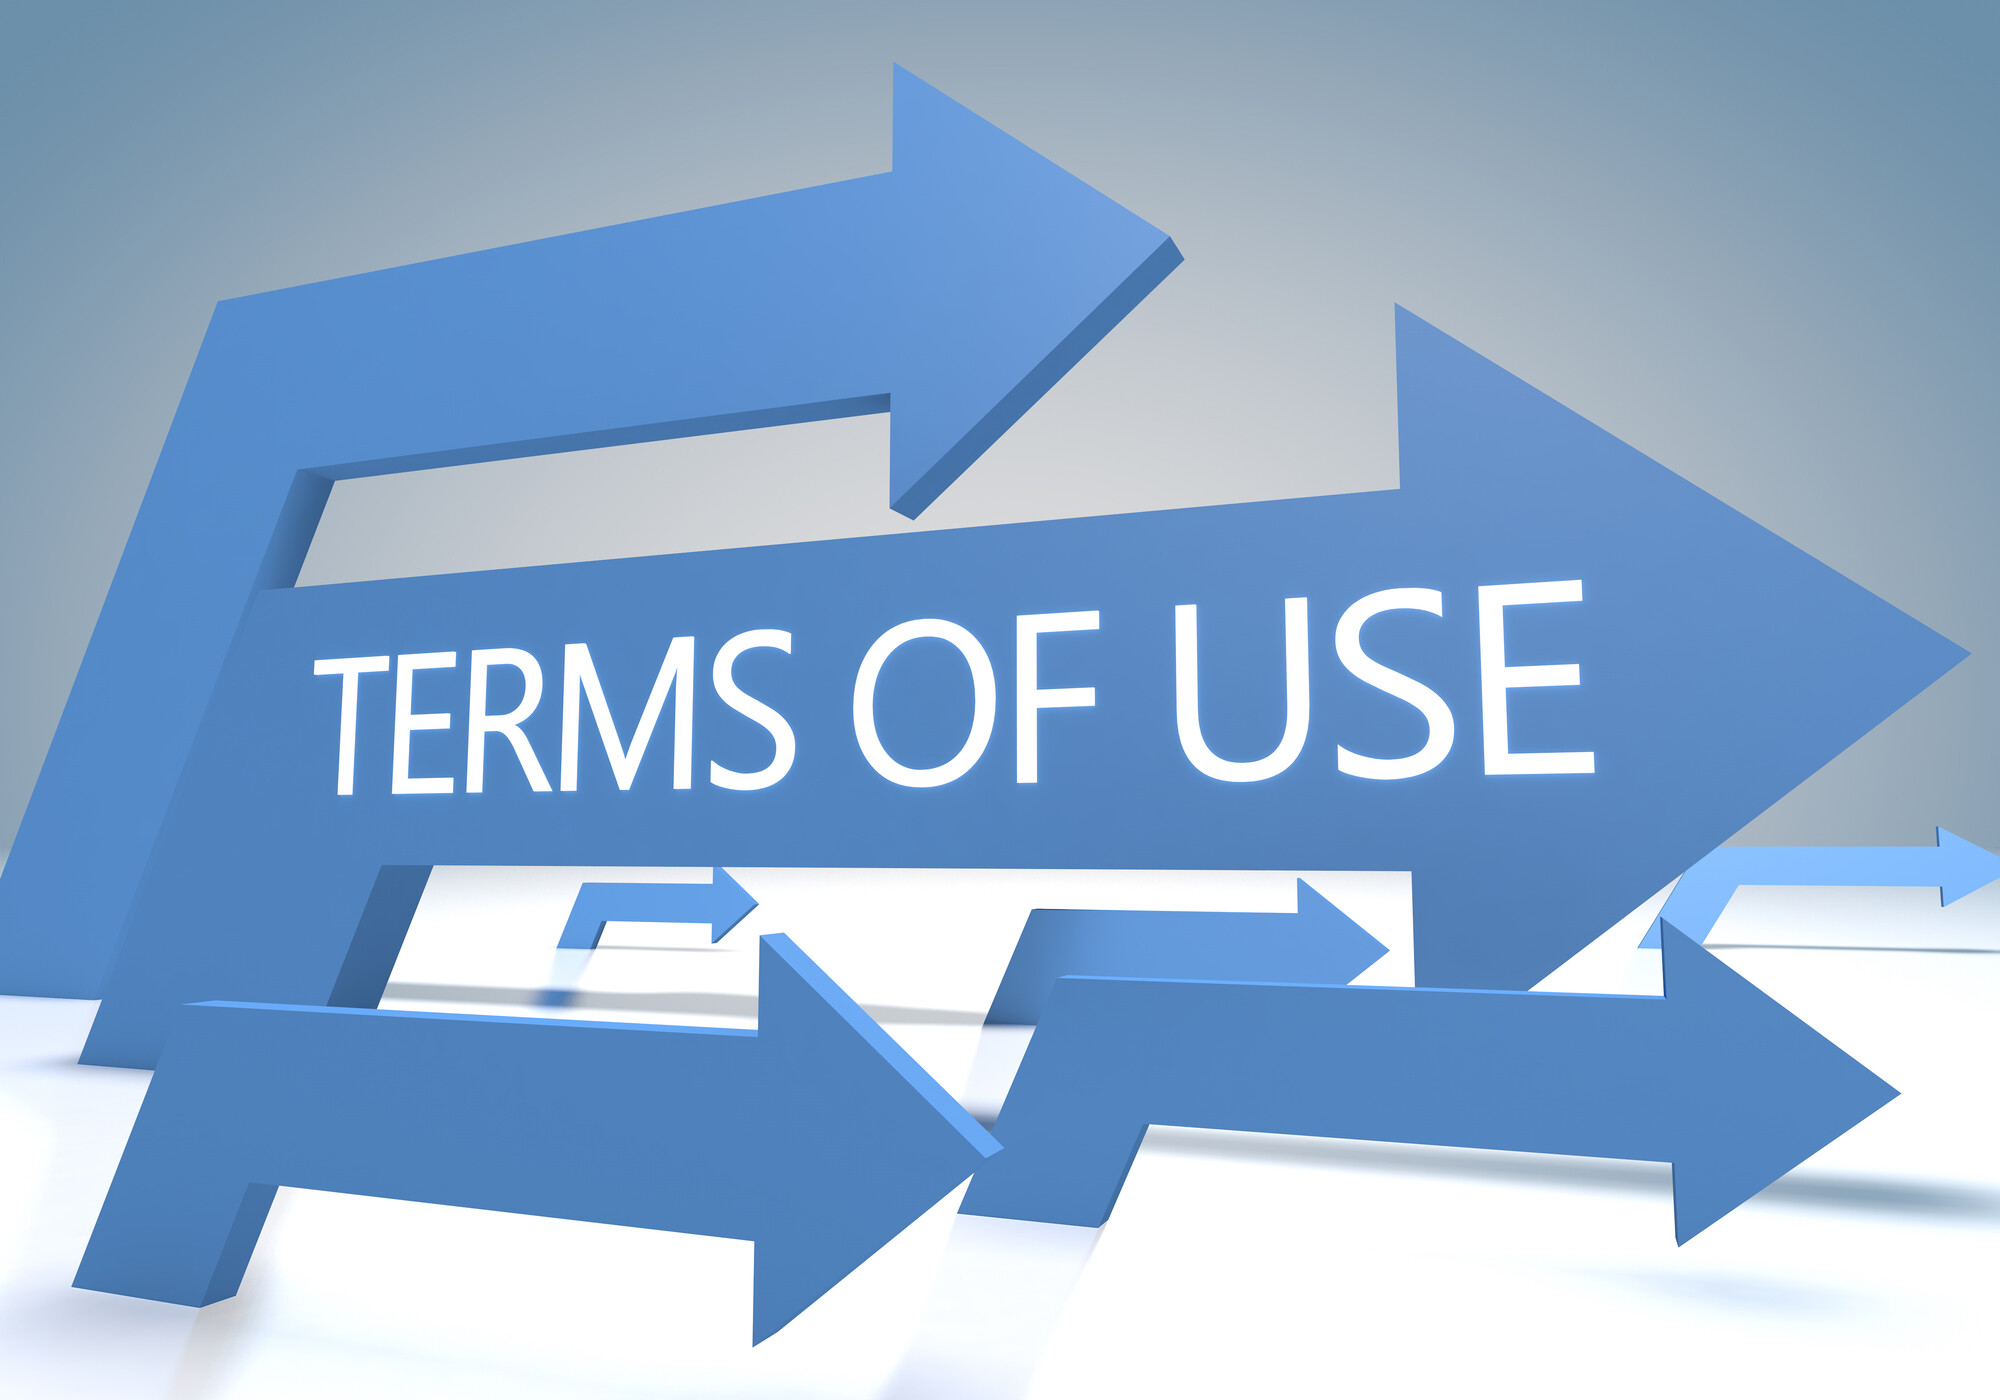 Terms Of Use - Our Shredding Service Agreement